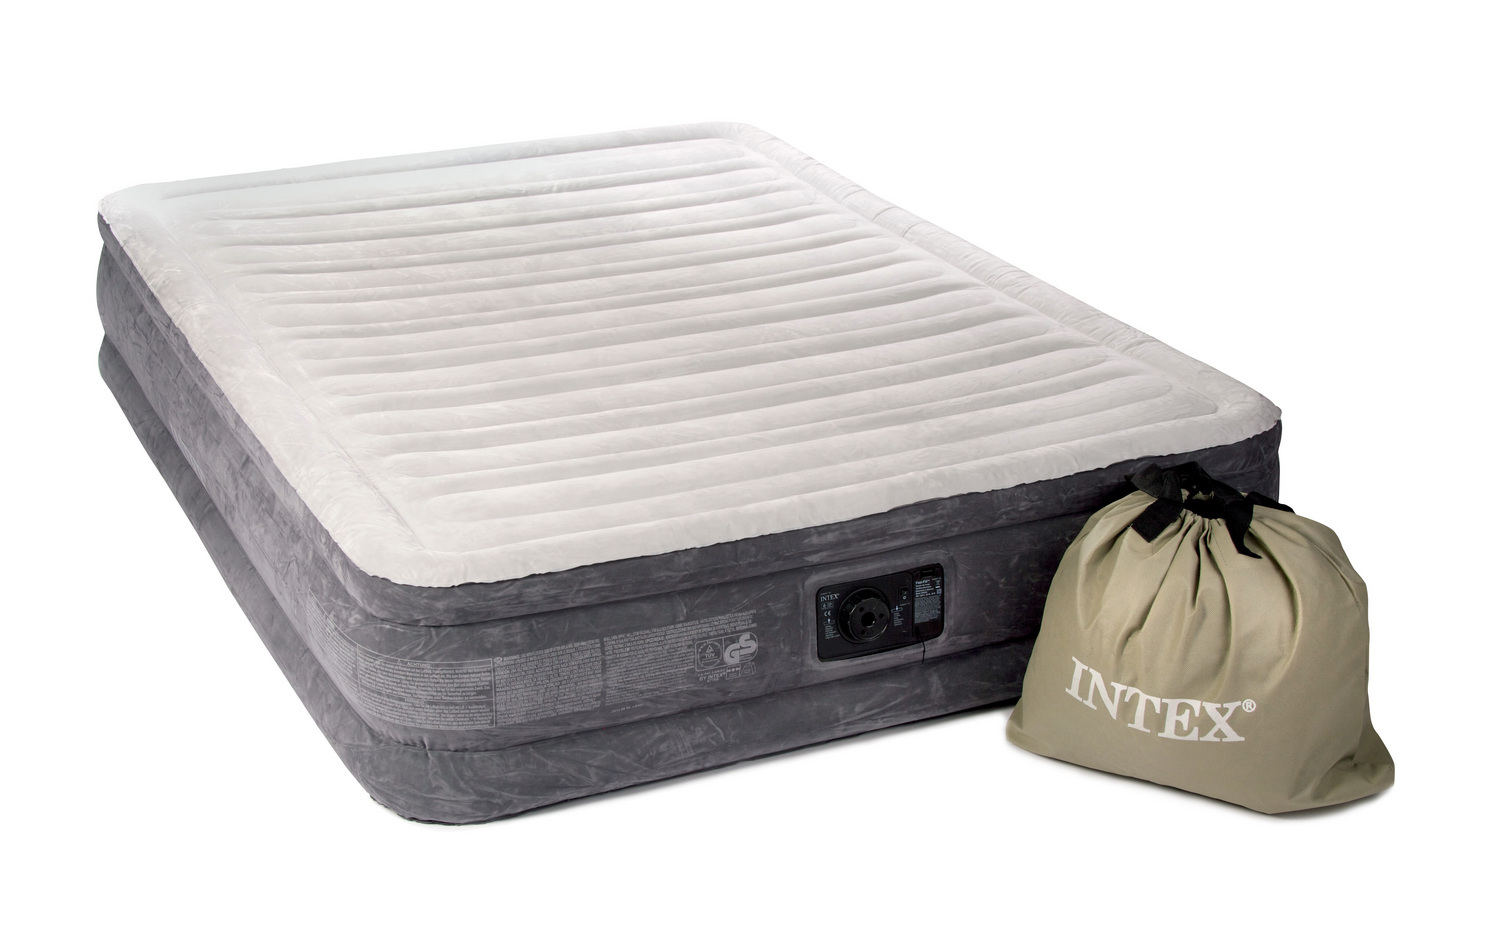 Intex comfort plush inflatable air bed buy from for Where to buy a matress